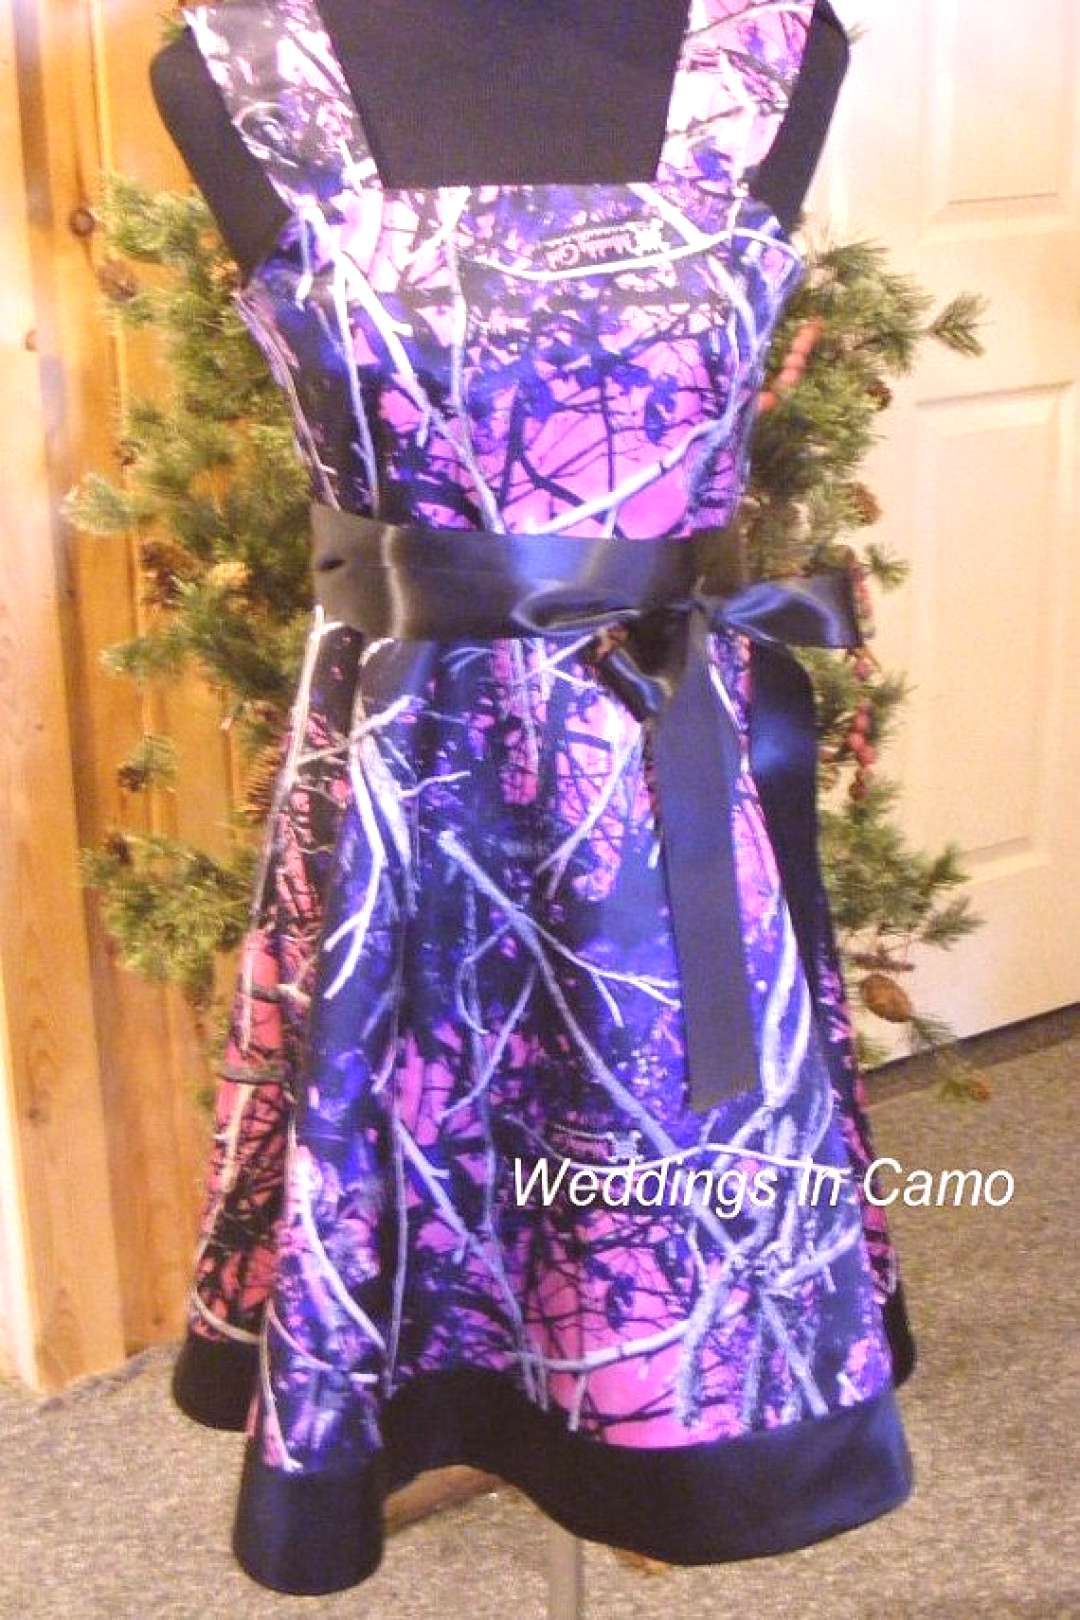 MUDDY GIRL Camo flower girl dress with BORDER Pick your Camo colors for your Country Wedding